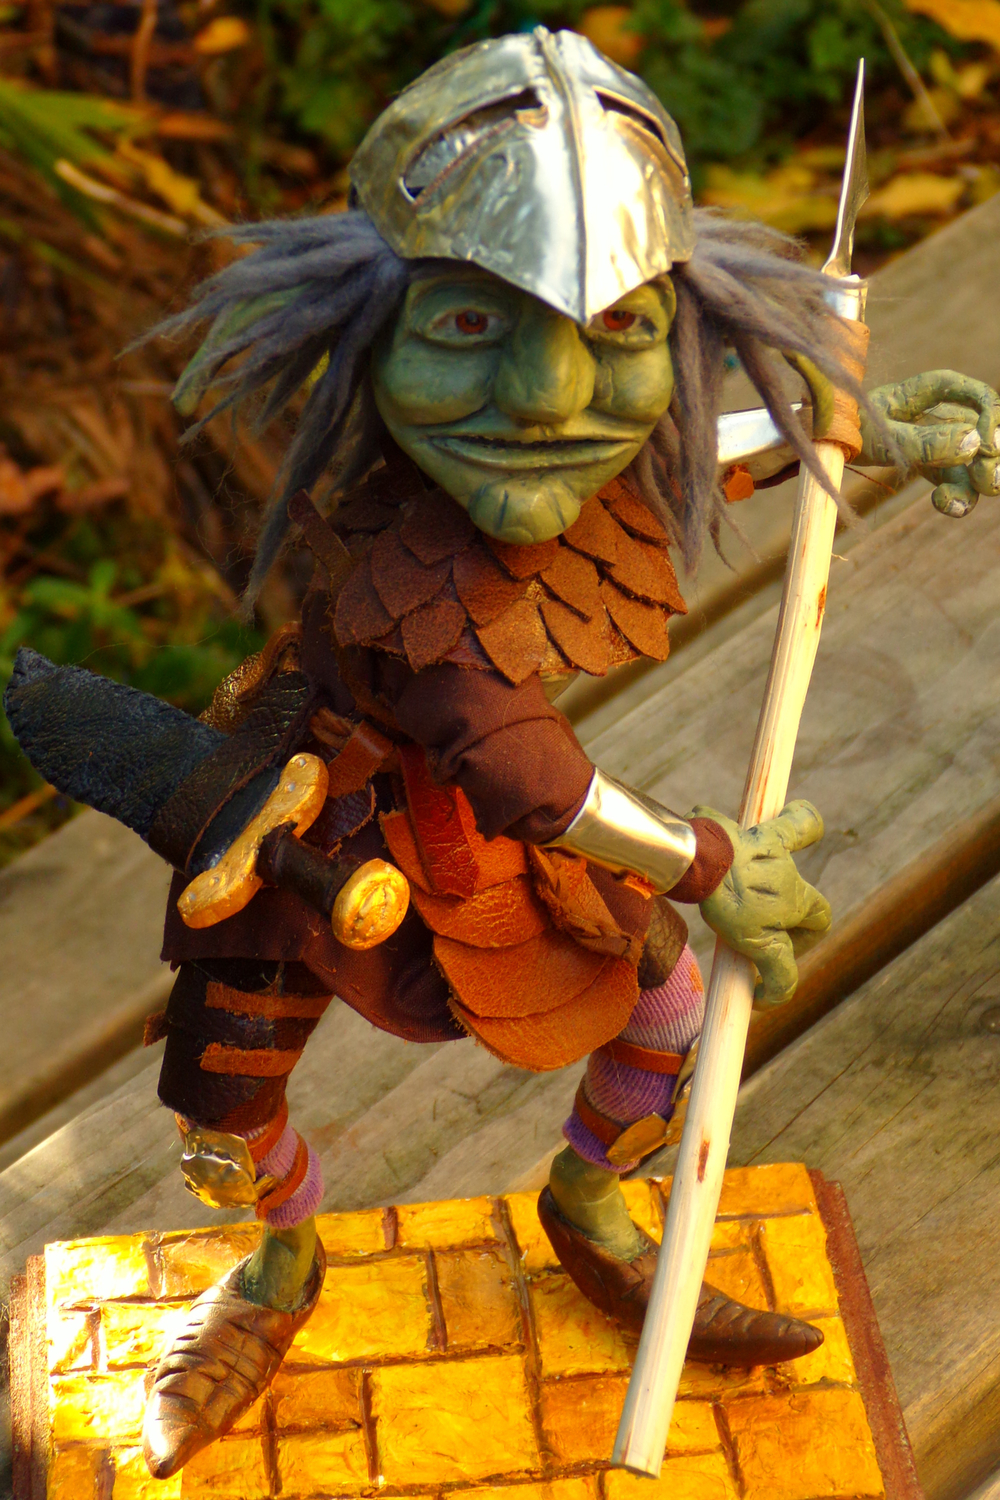 Labyrinth inspired Goblin Warrior Artwork by Cherrie Button